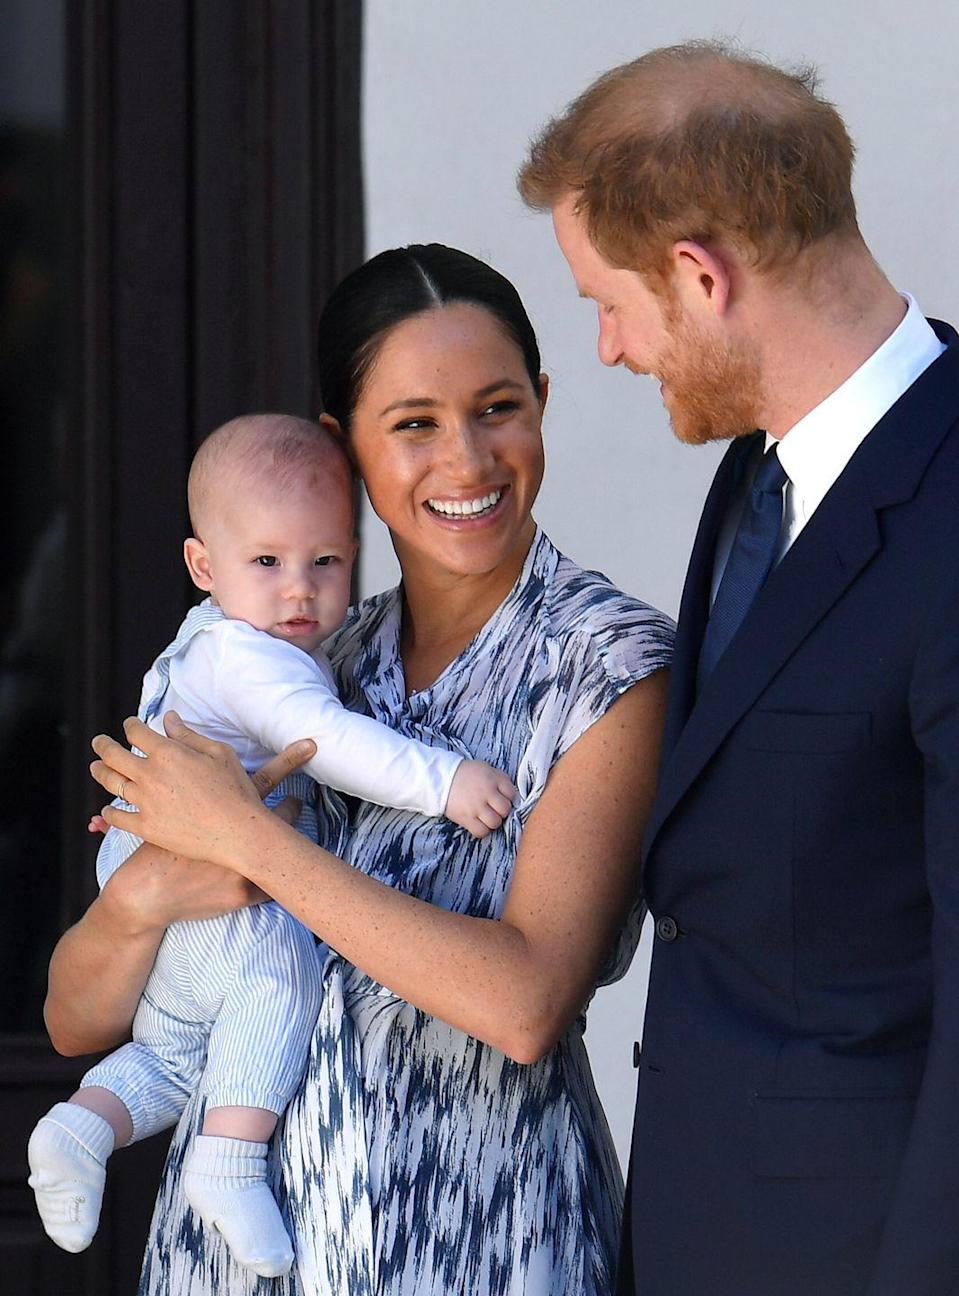 prince harry and meghan markle are now gainfully employed at netflix prince harry and meghan markle are now